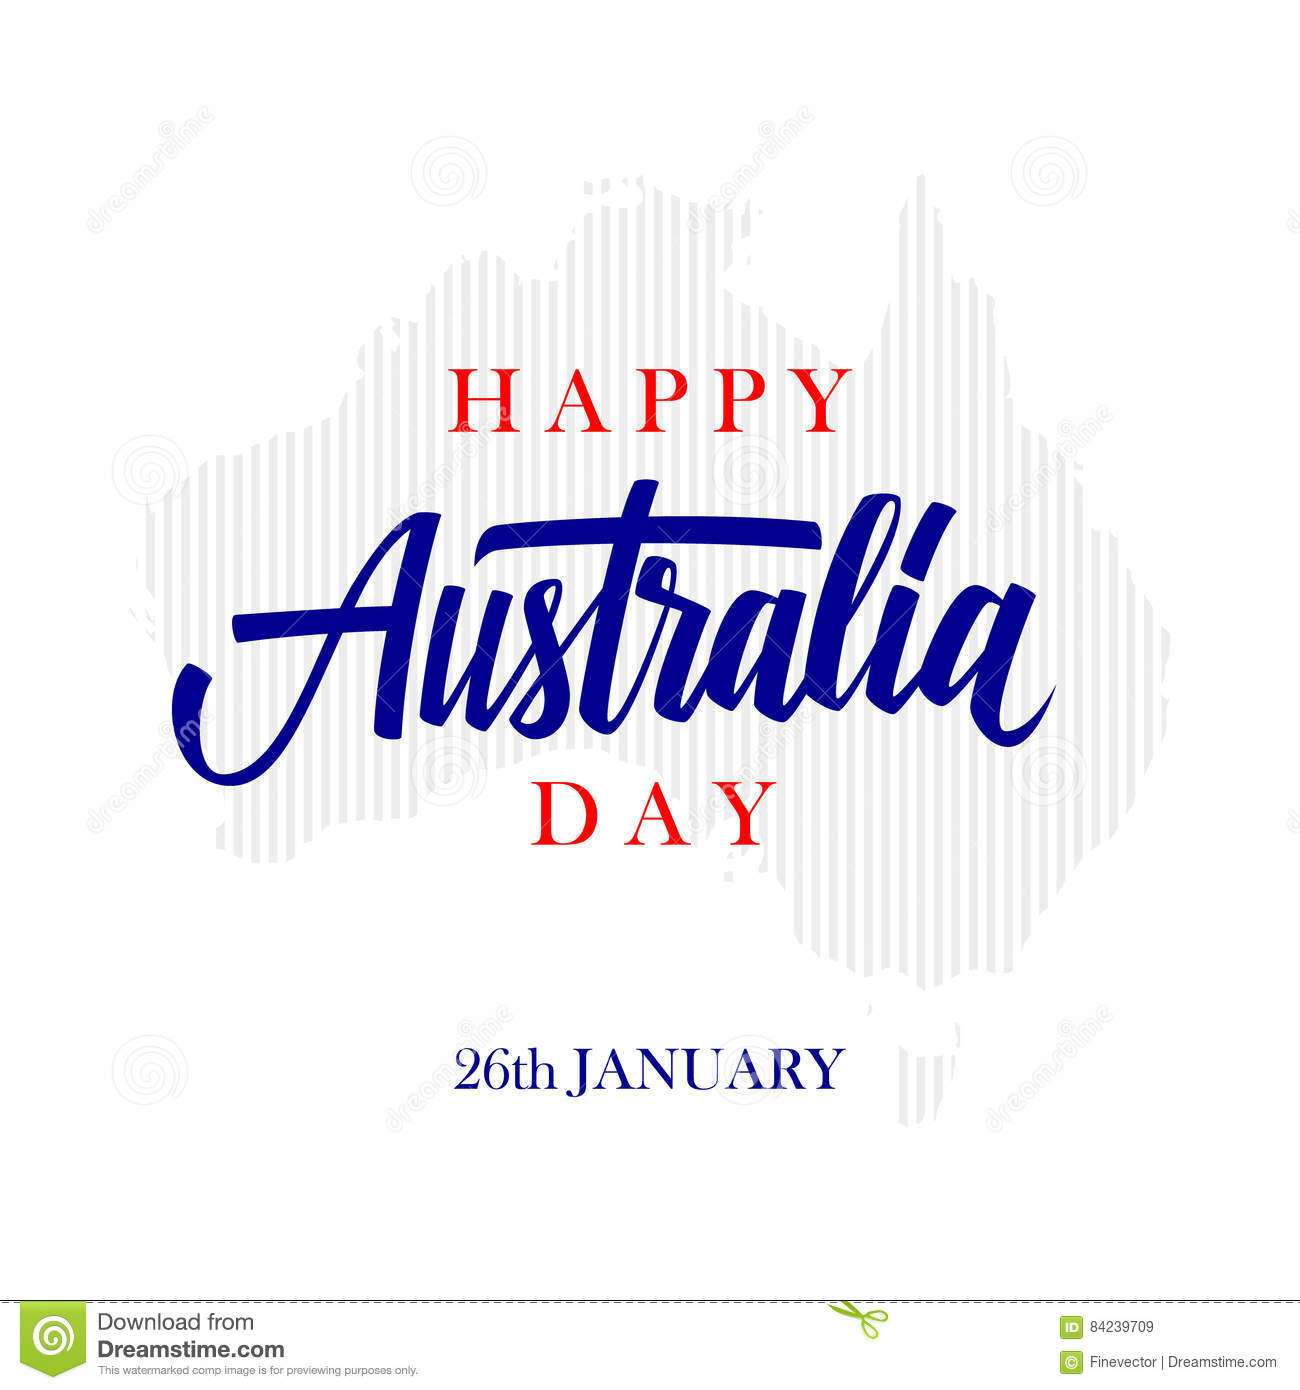 Happy australia day greeting card with calligraphic element happy australia day greeting card with calligraphic element creative typography for holiday greetings kristyandbryce Choice Image